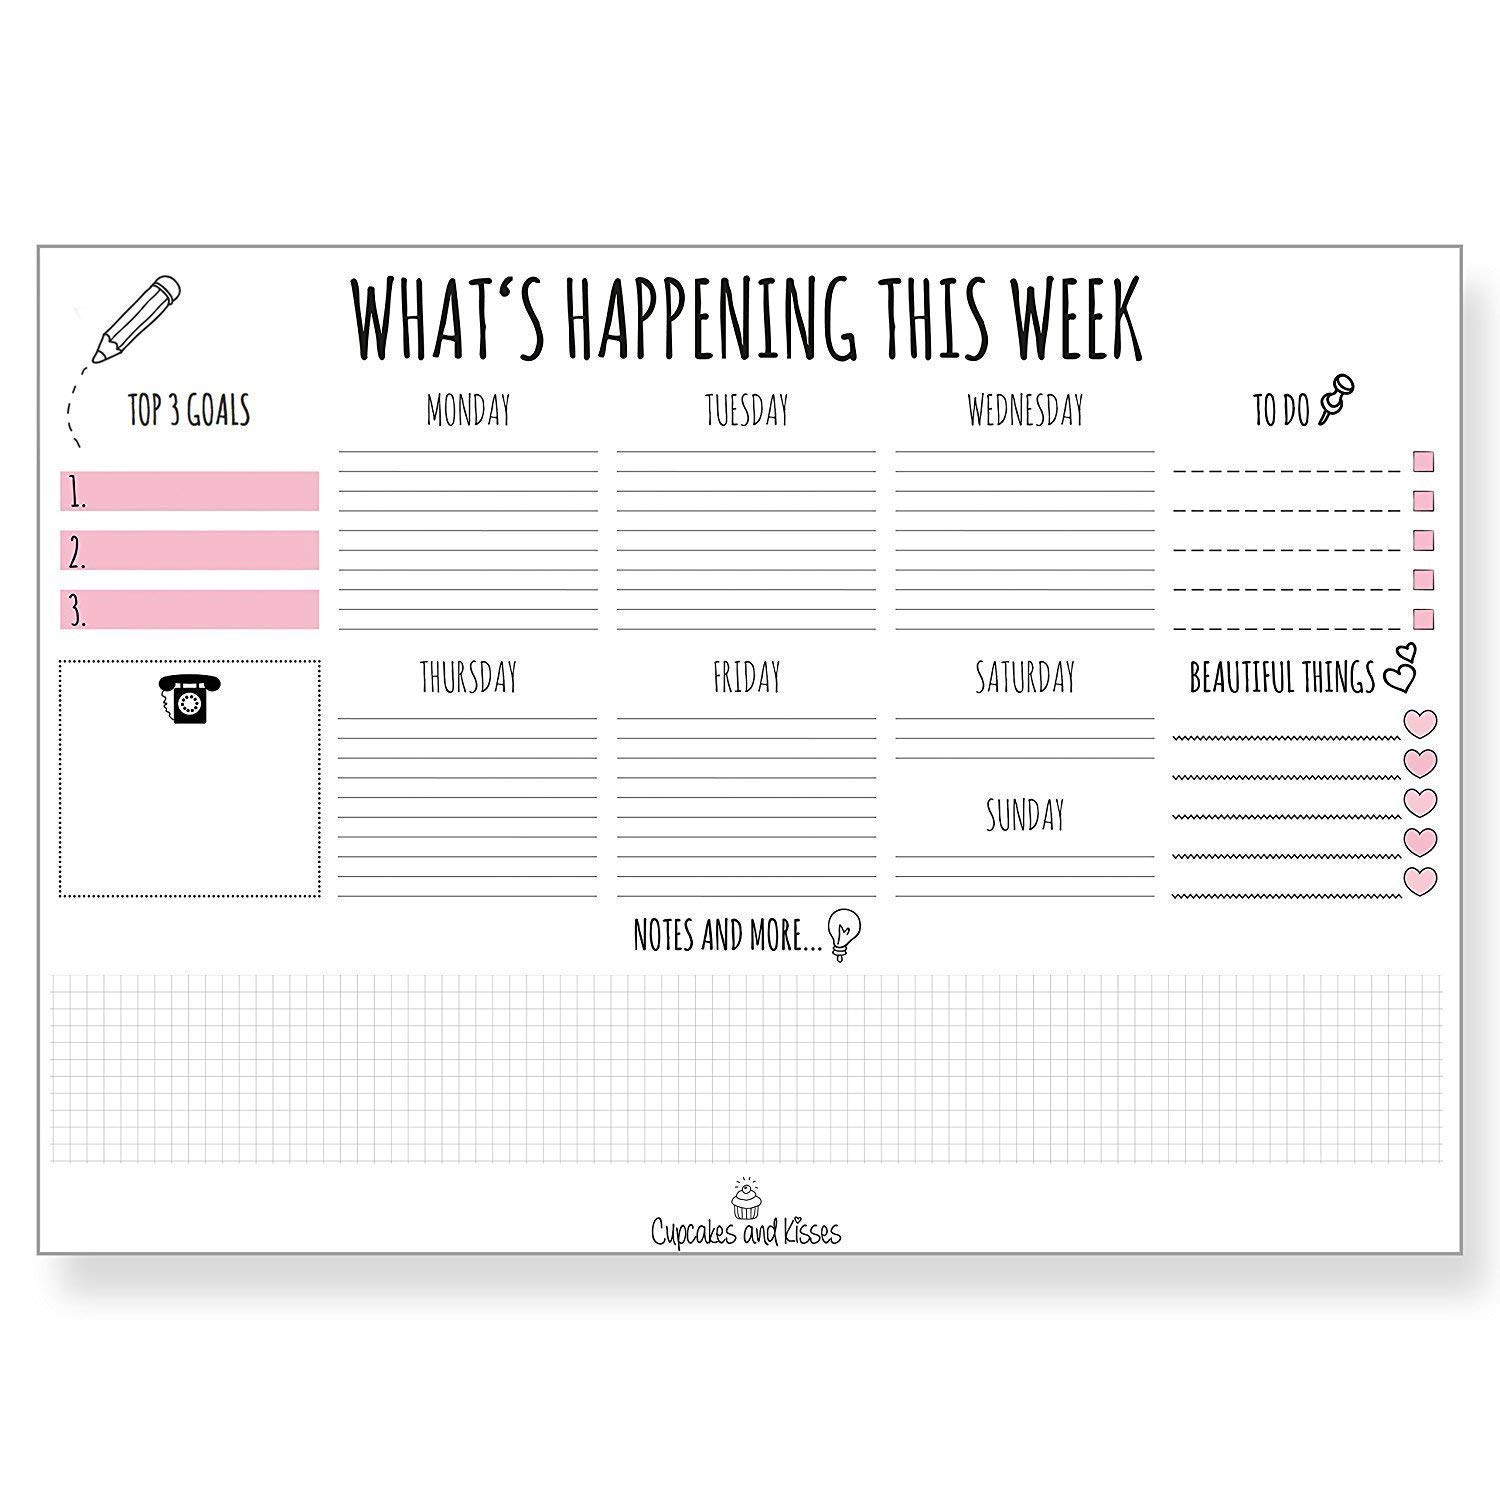 CUPCAKES & KISSES Desk Pad Calendar for Writing I Paper I Tear-Off Sheets I for Dates & Notes I Daily Planner & Weekly Overview I to-Do List I 2019 by Cupcakes & Kisses